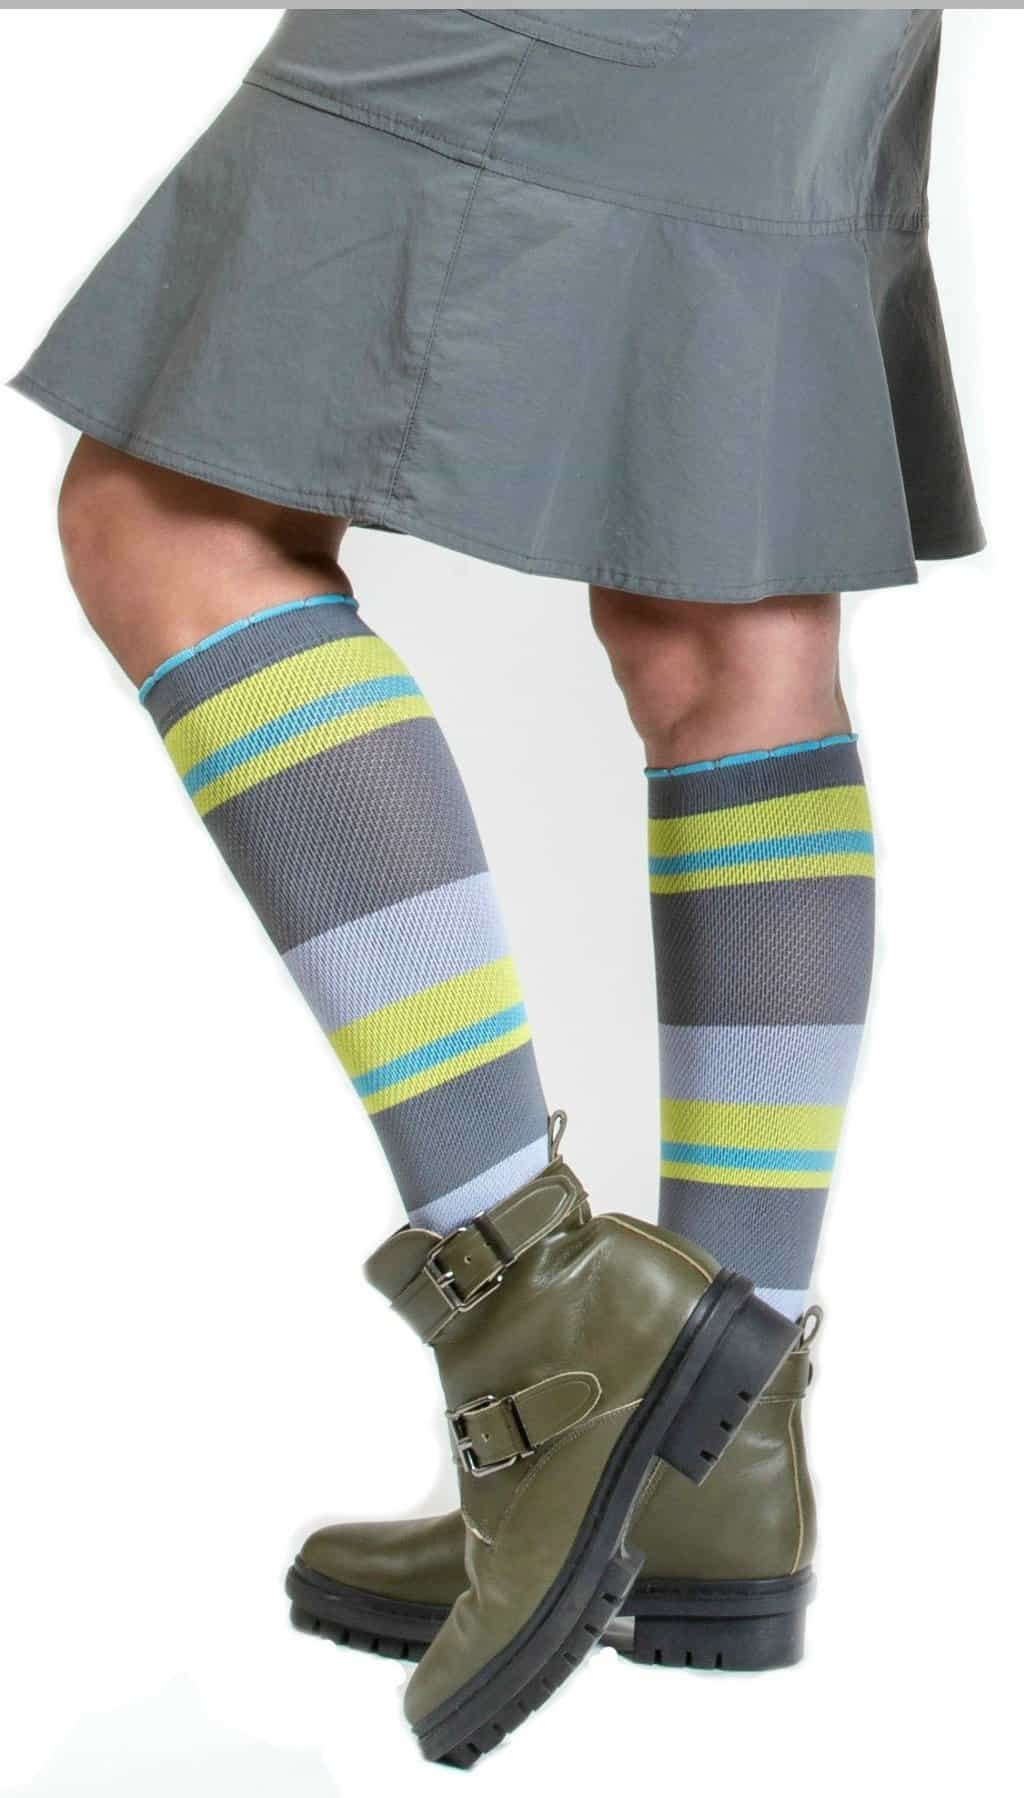 American Made Preppy Fashion Compression Socks From Lily Trotter | 25 percent off coupon code SAVE25NOW